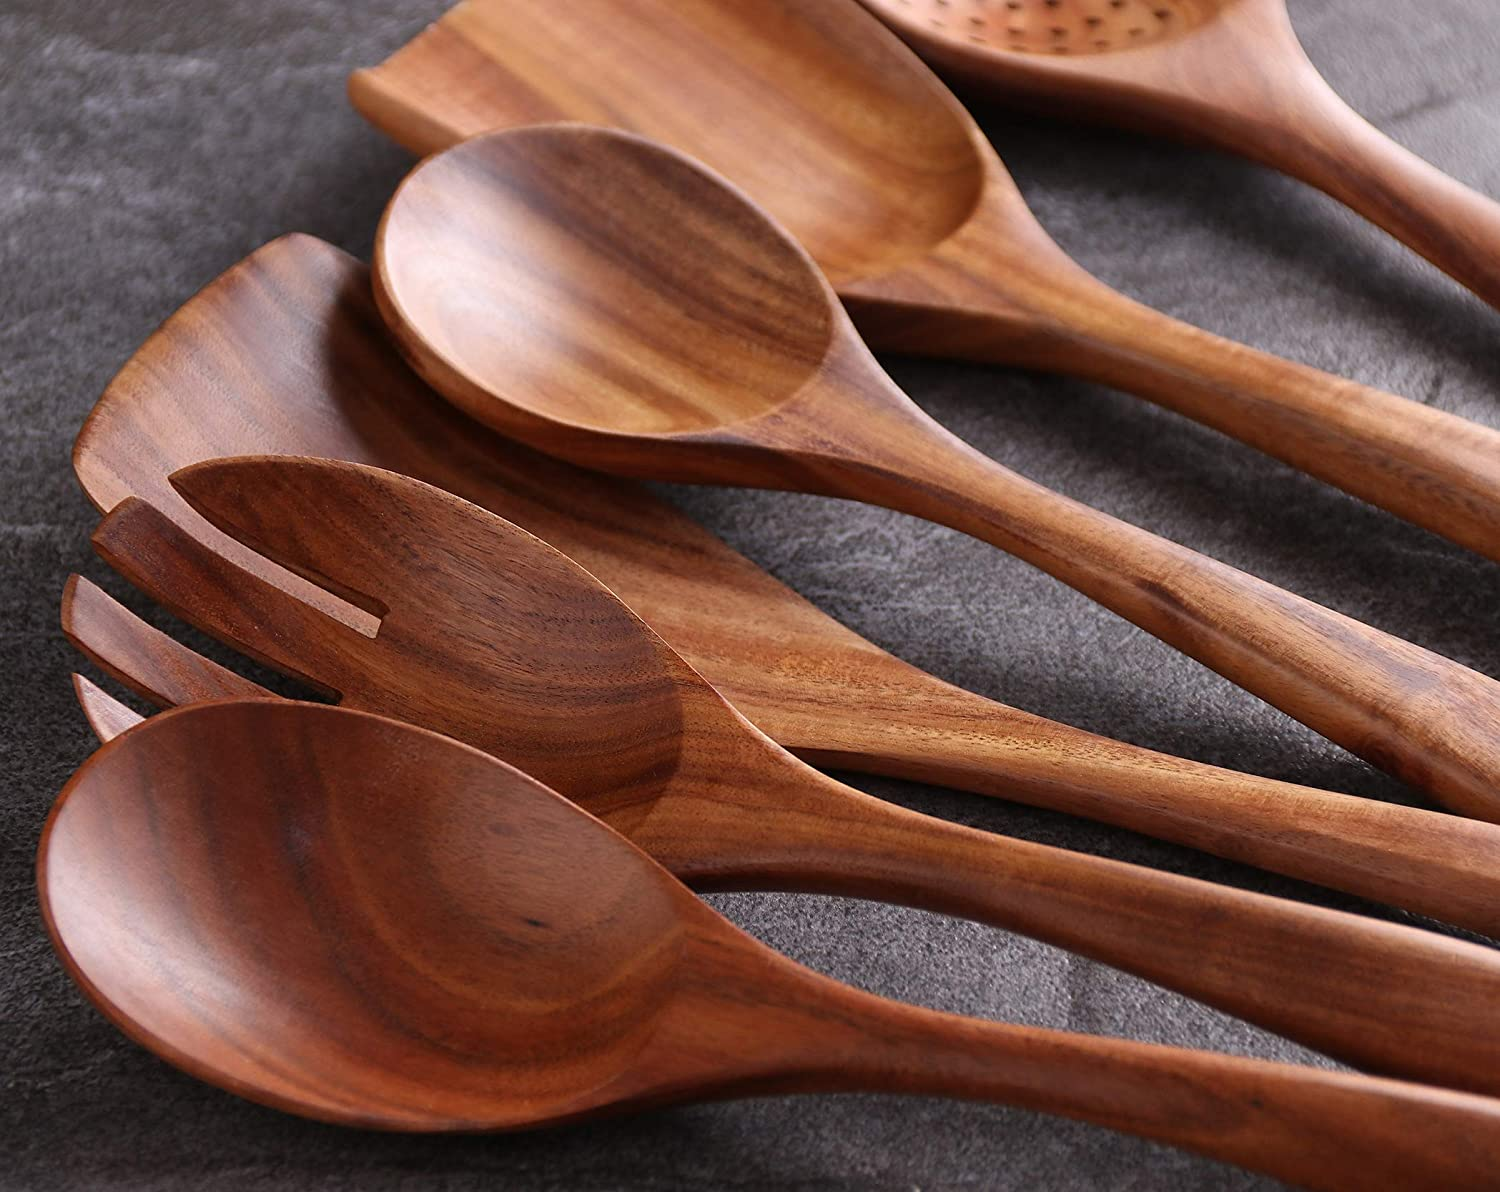 Wooden Kitchen Utensil Set,Salad spoon spatula NAYAHOSE 6-Piece Wood Cooking Spoons Tools for Nonstick Cookware,100/% handmade made by Natural Teak Wood without any painting